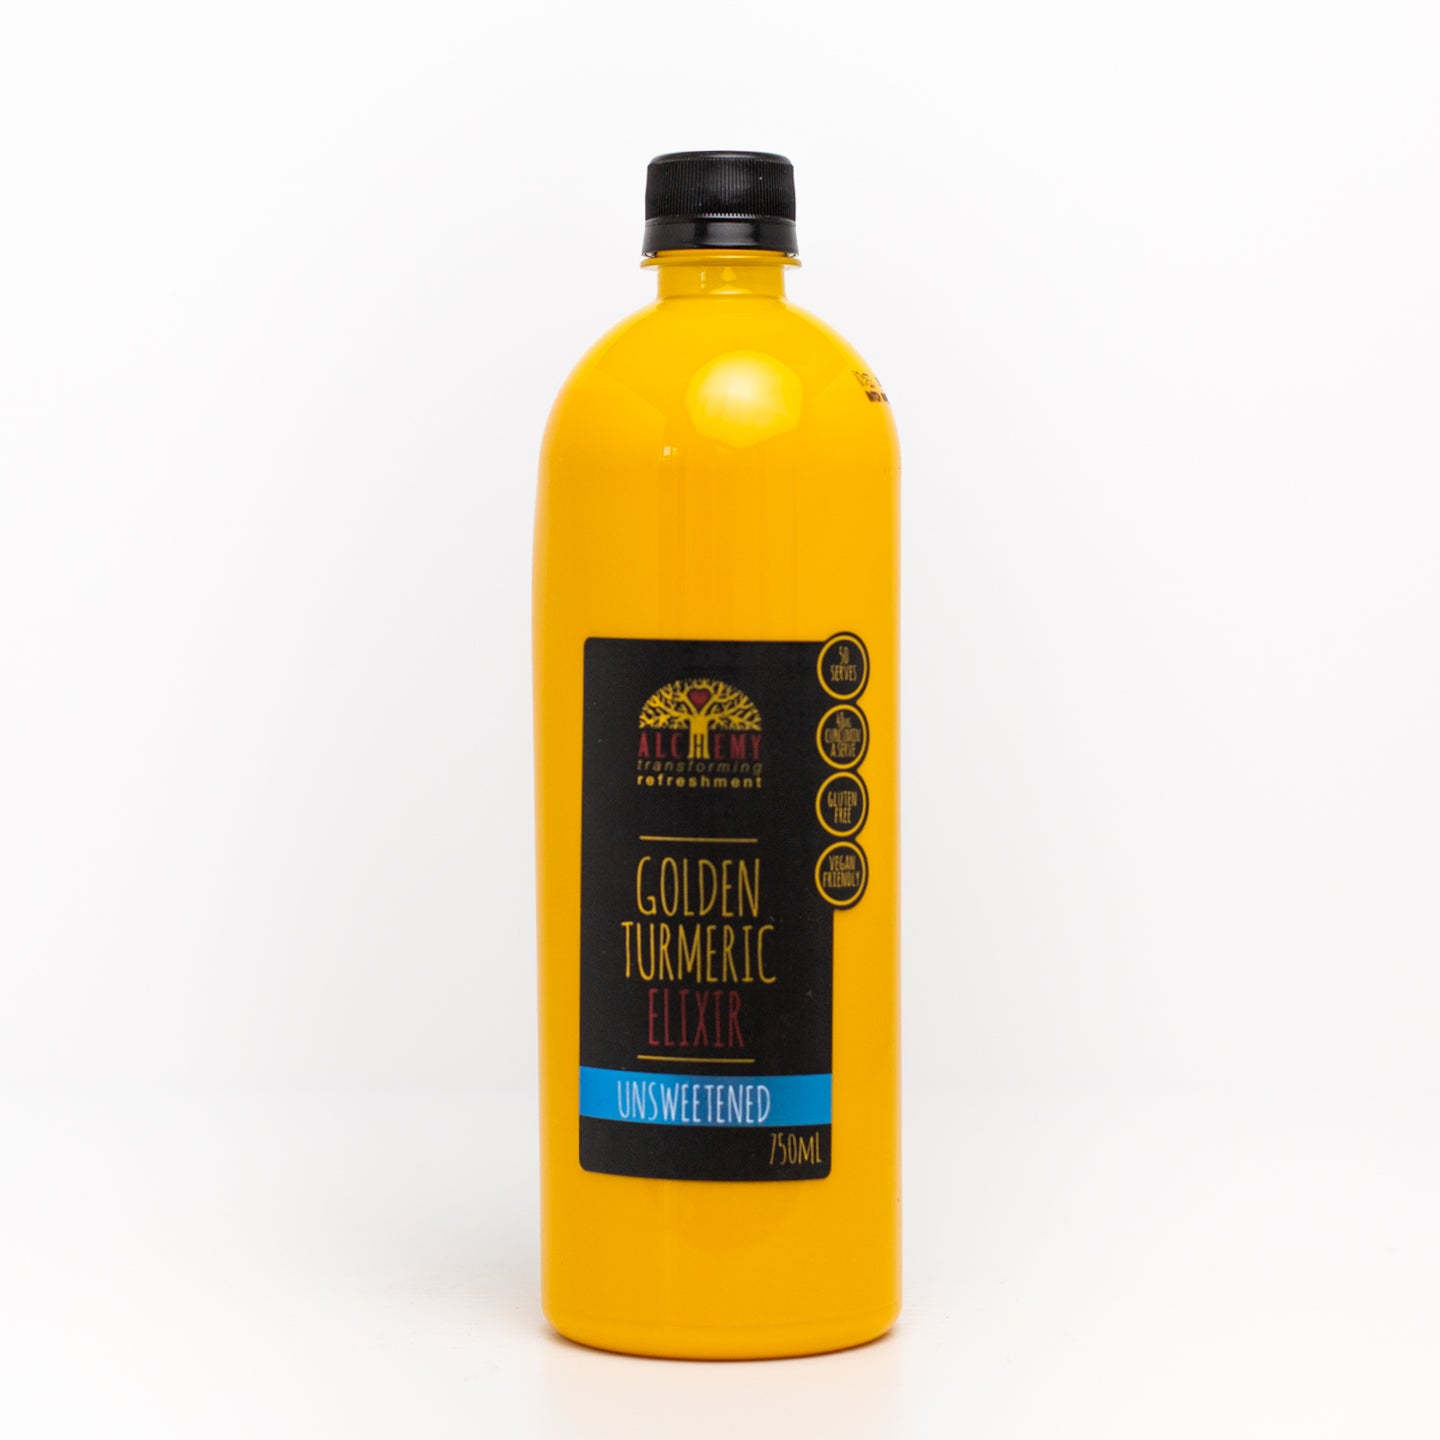 Golden Turmeric Elixir Unsweetened 750ml bottle